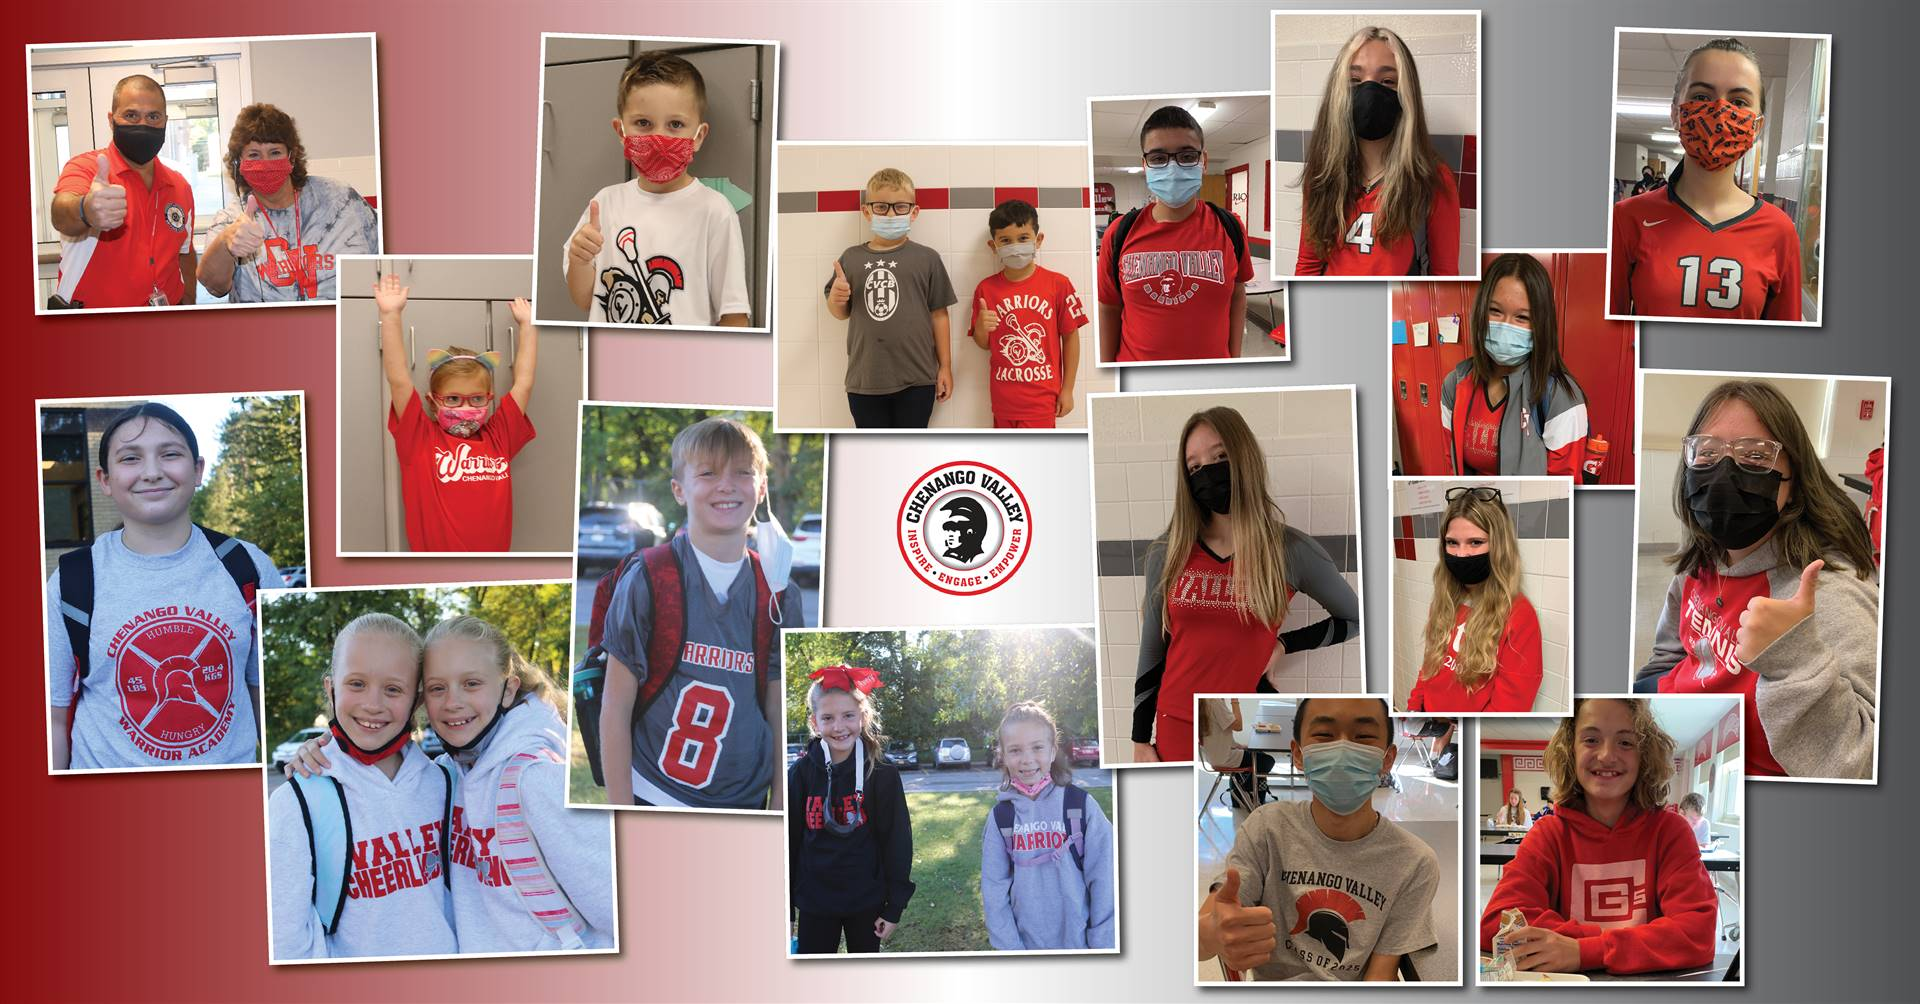 students dressed in red and gray for warrior day for spirit week